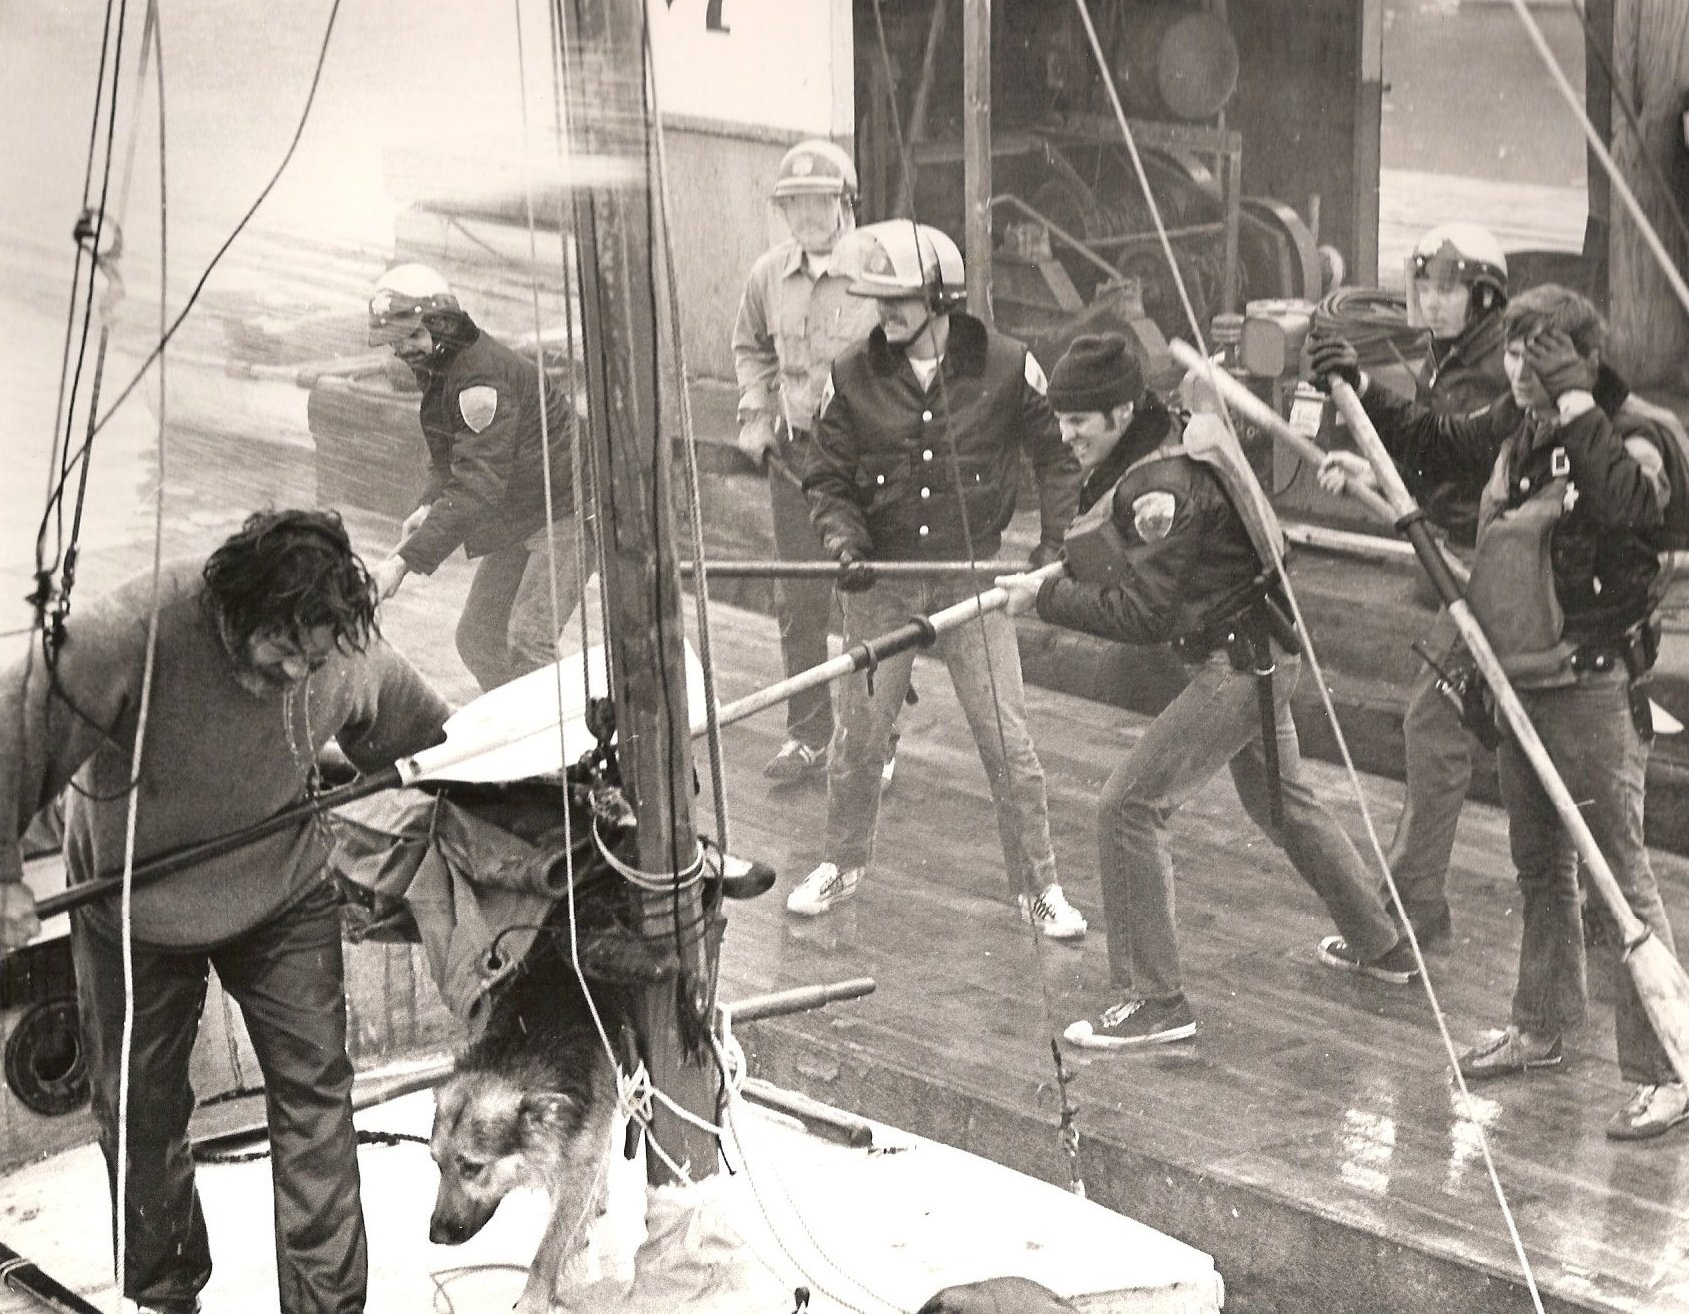 A sailboat became the focus of a push-pull with sheriff's officers during an attempt to block the construction of Liberty Dock at Waldo Point Harbor. Photo © Bruce Forrester